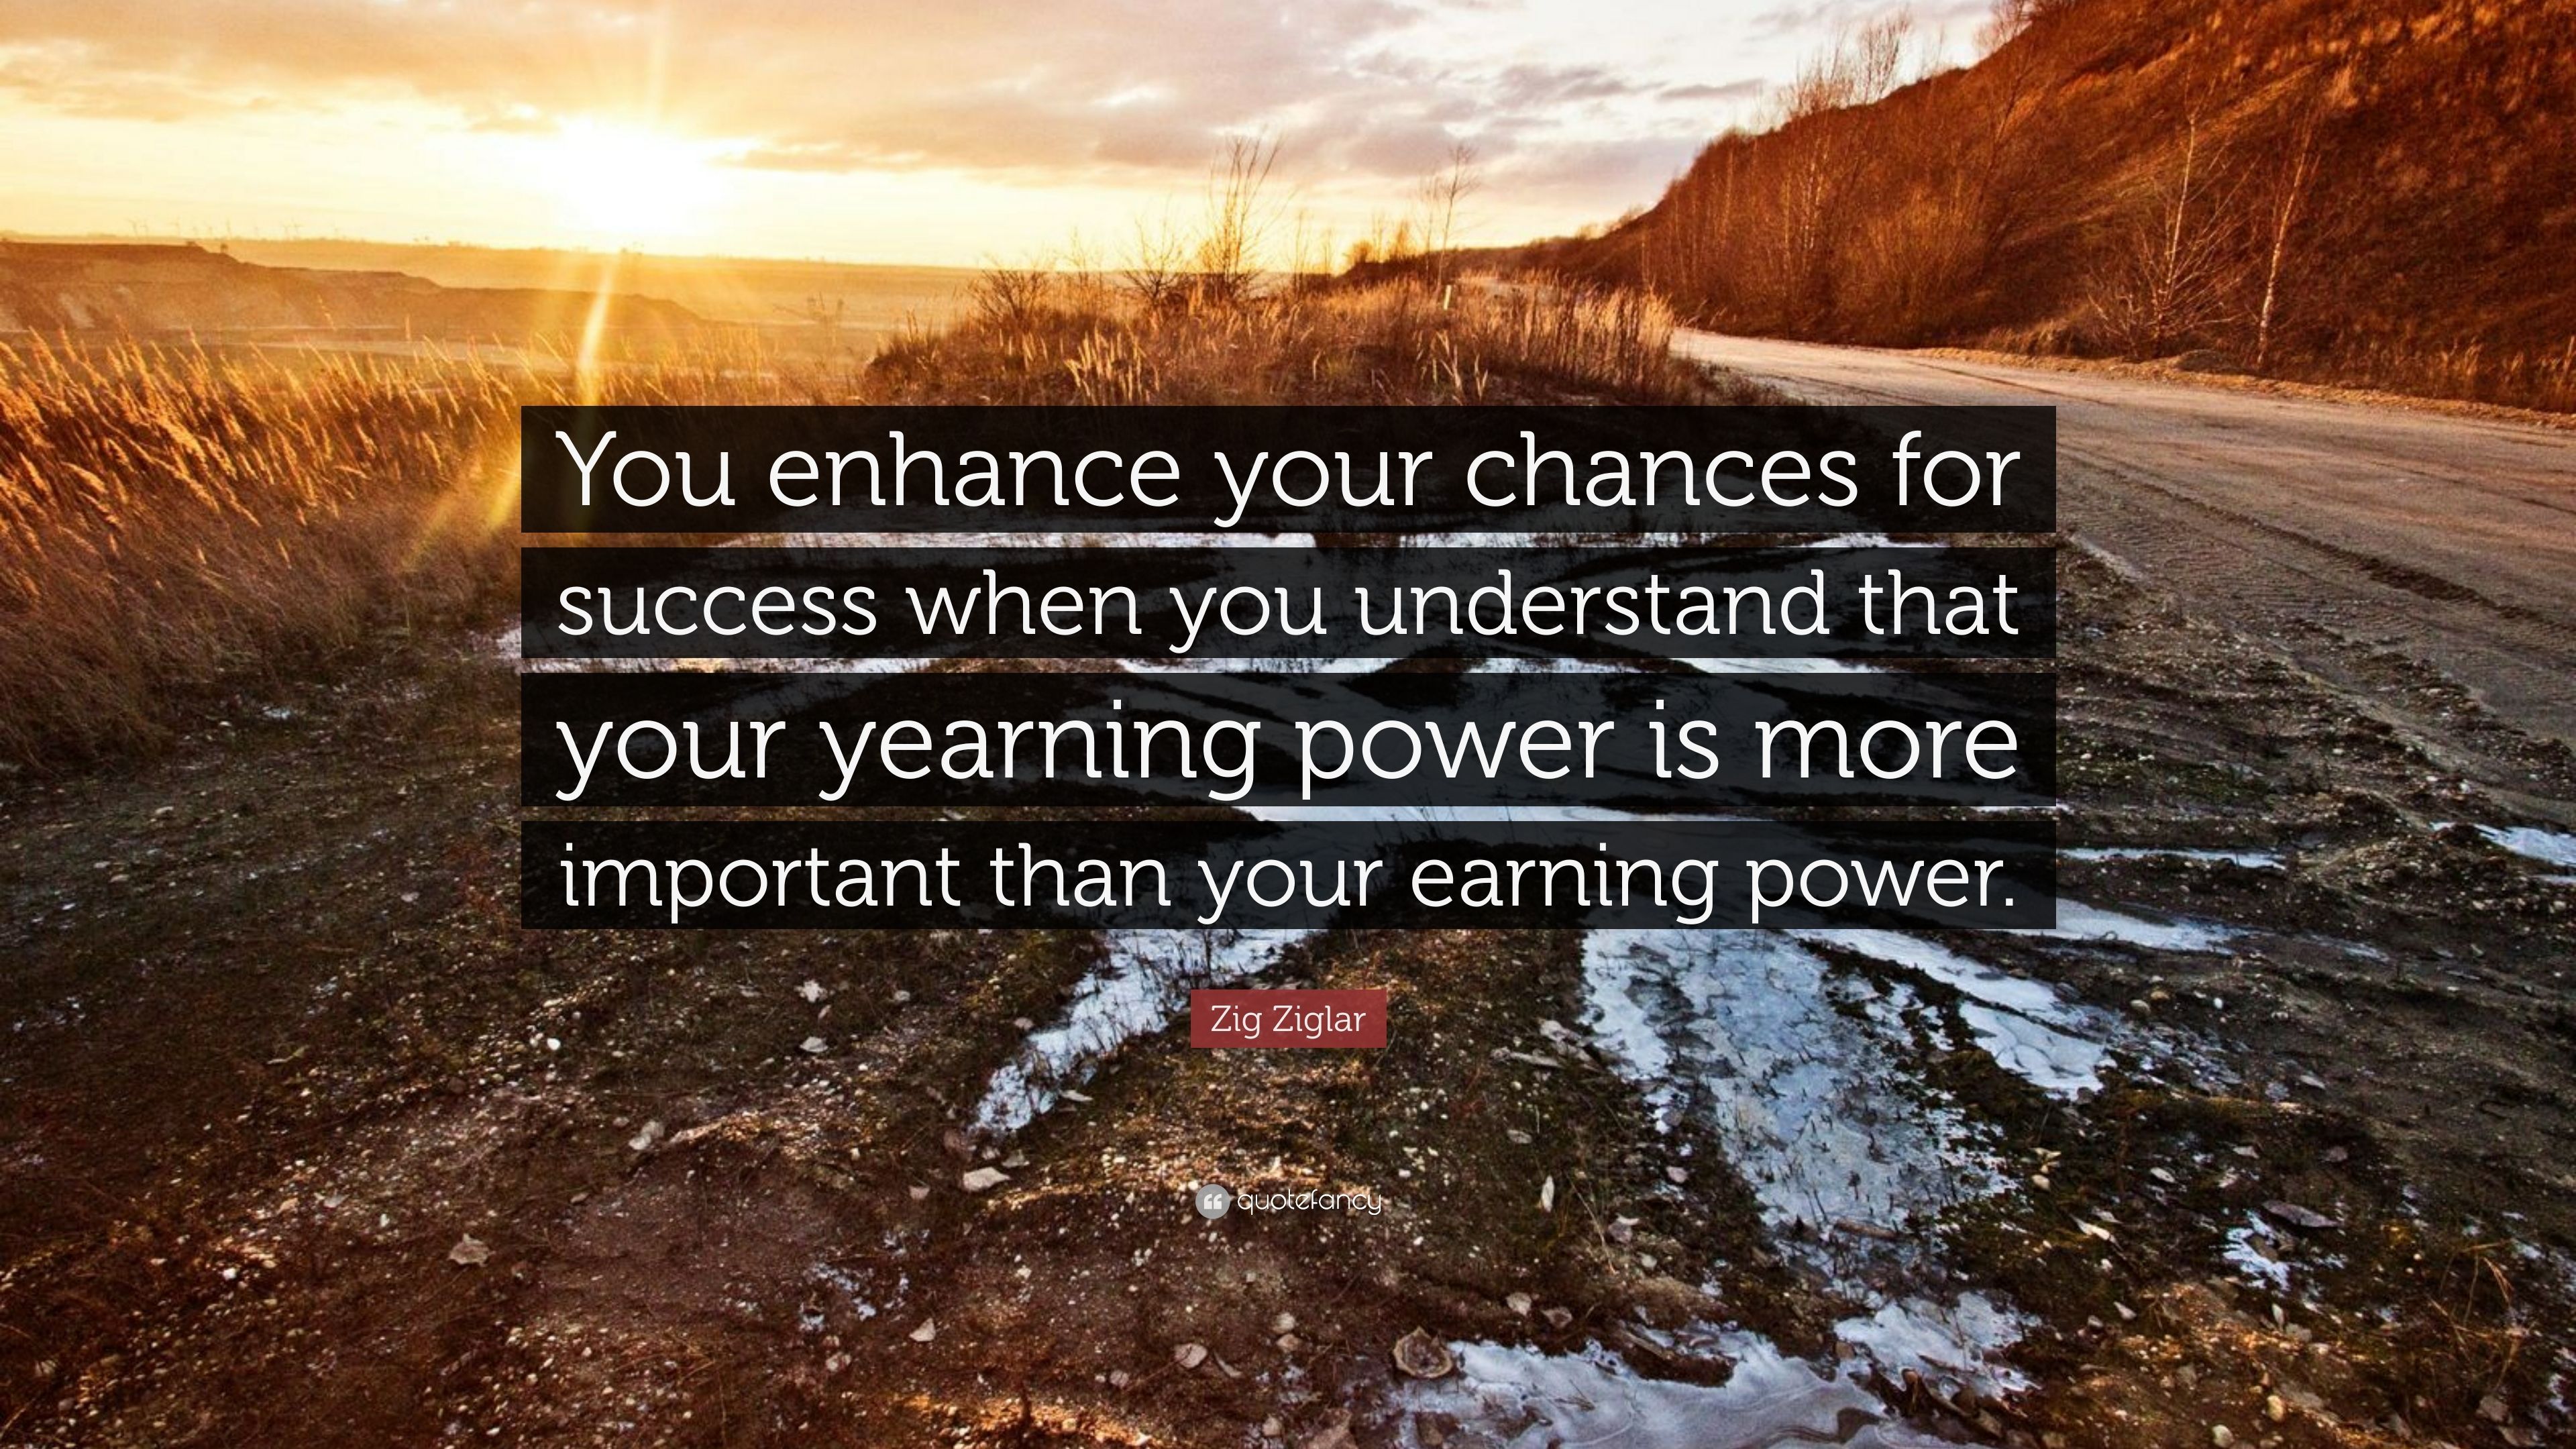 Genial Zig Ziglar Quote: U201cYou Enhance Your Chances For Success When You Understand  That Your